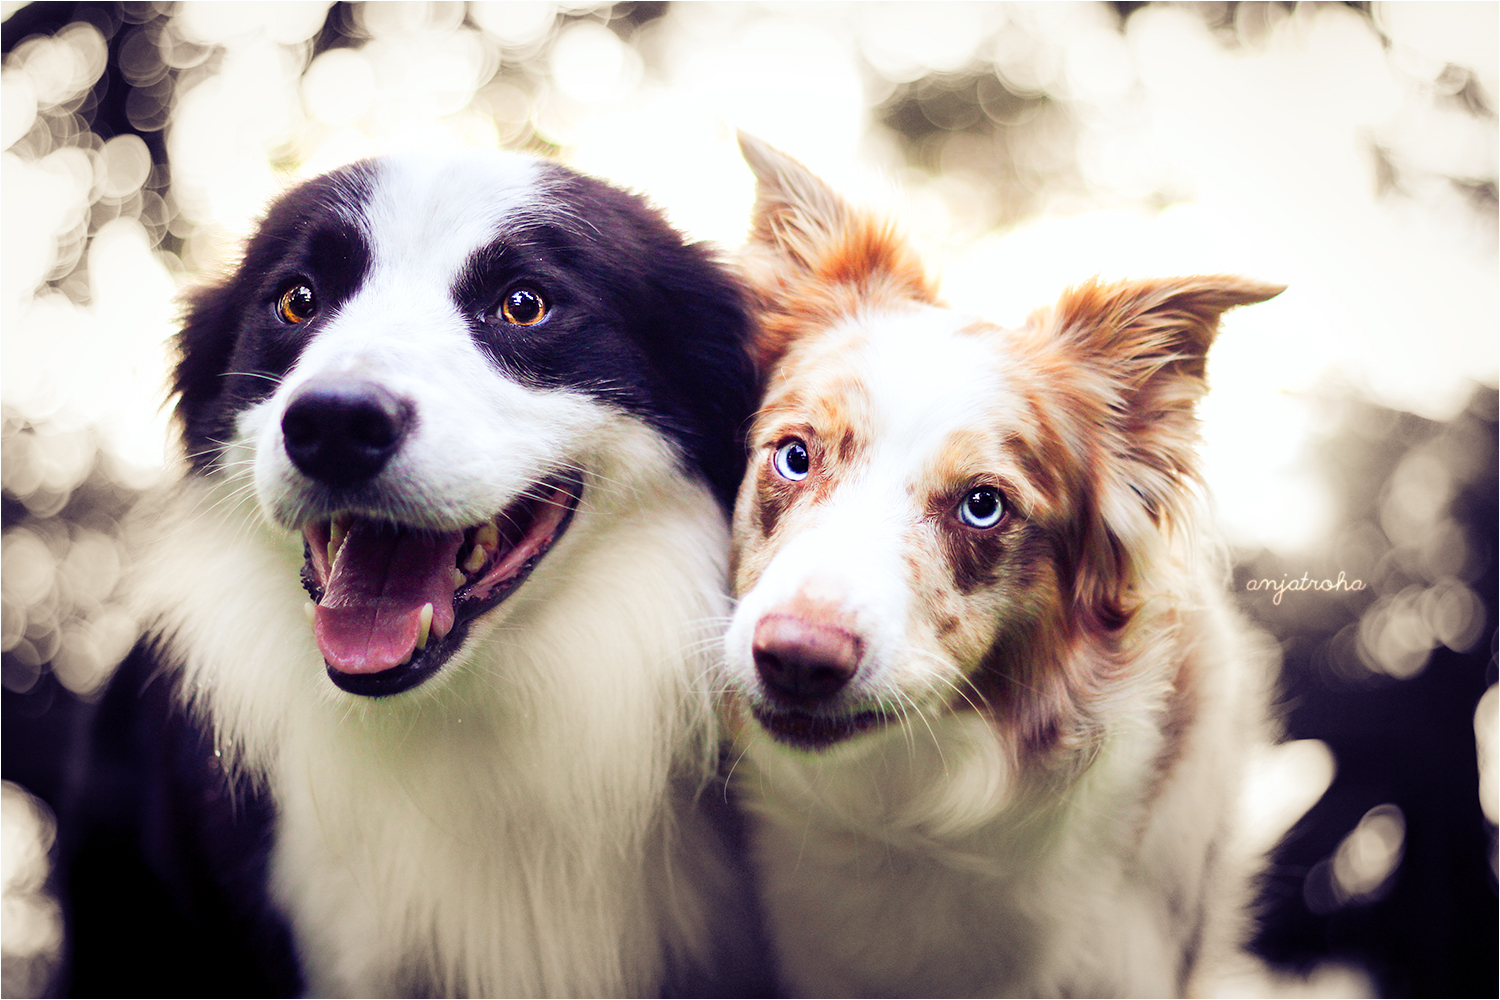 bordercollie.noticiasdeperros.com